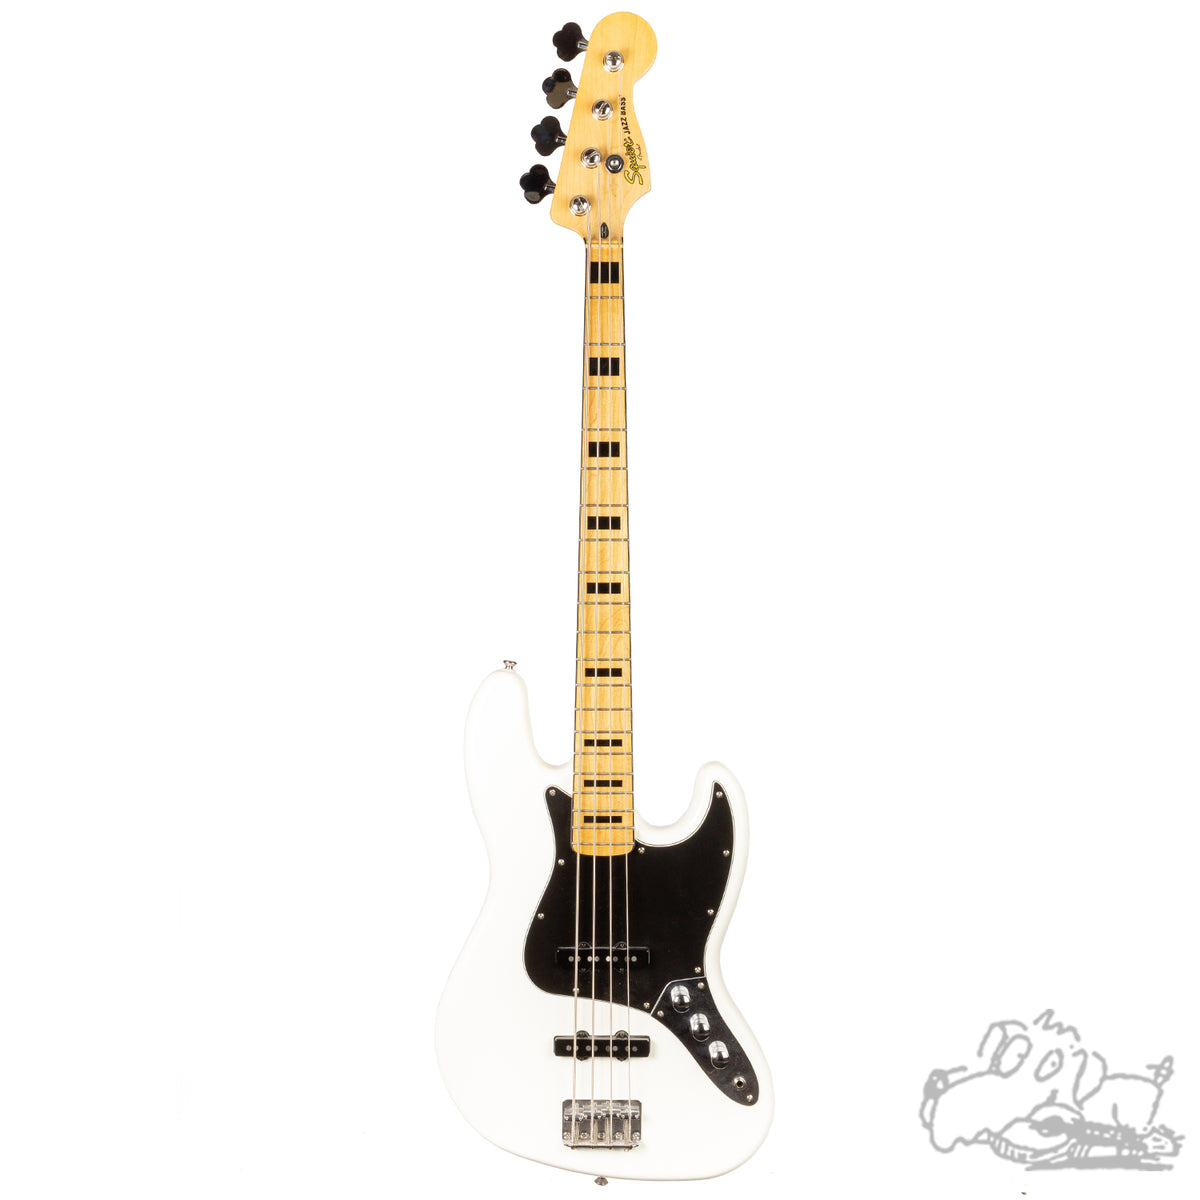 2013 Squier Jazz Bass - Used